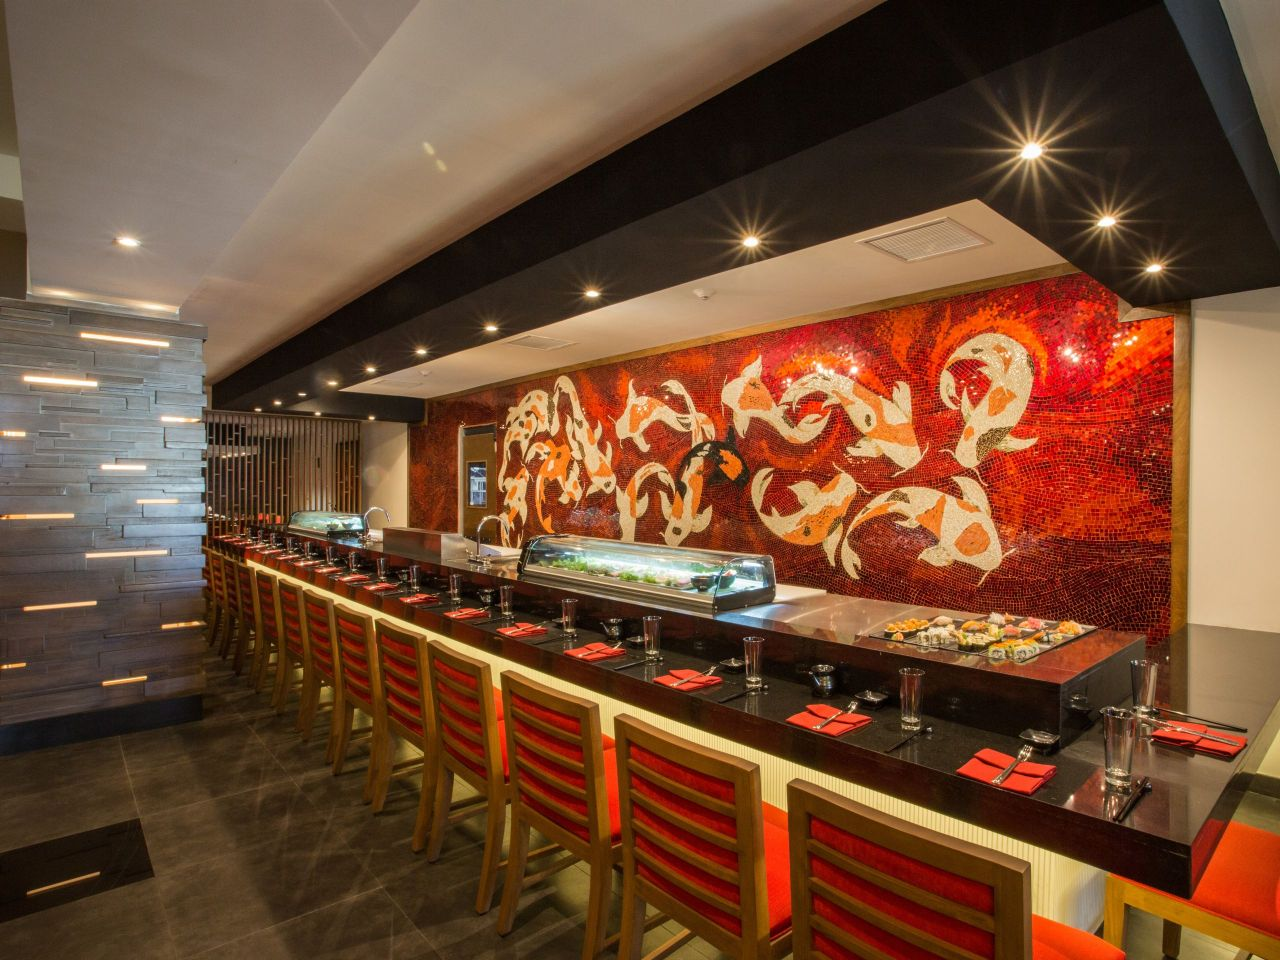 Discover A True Taste Of An Right Here In Cabo At Dozo Every Evening Promises New Asian Culinary Adventure From Our Teppanyaki Grills To The Sunken